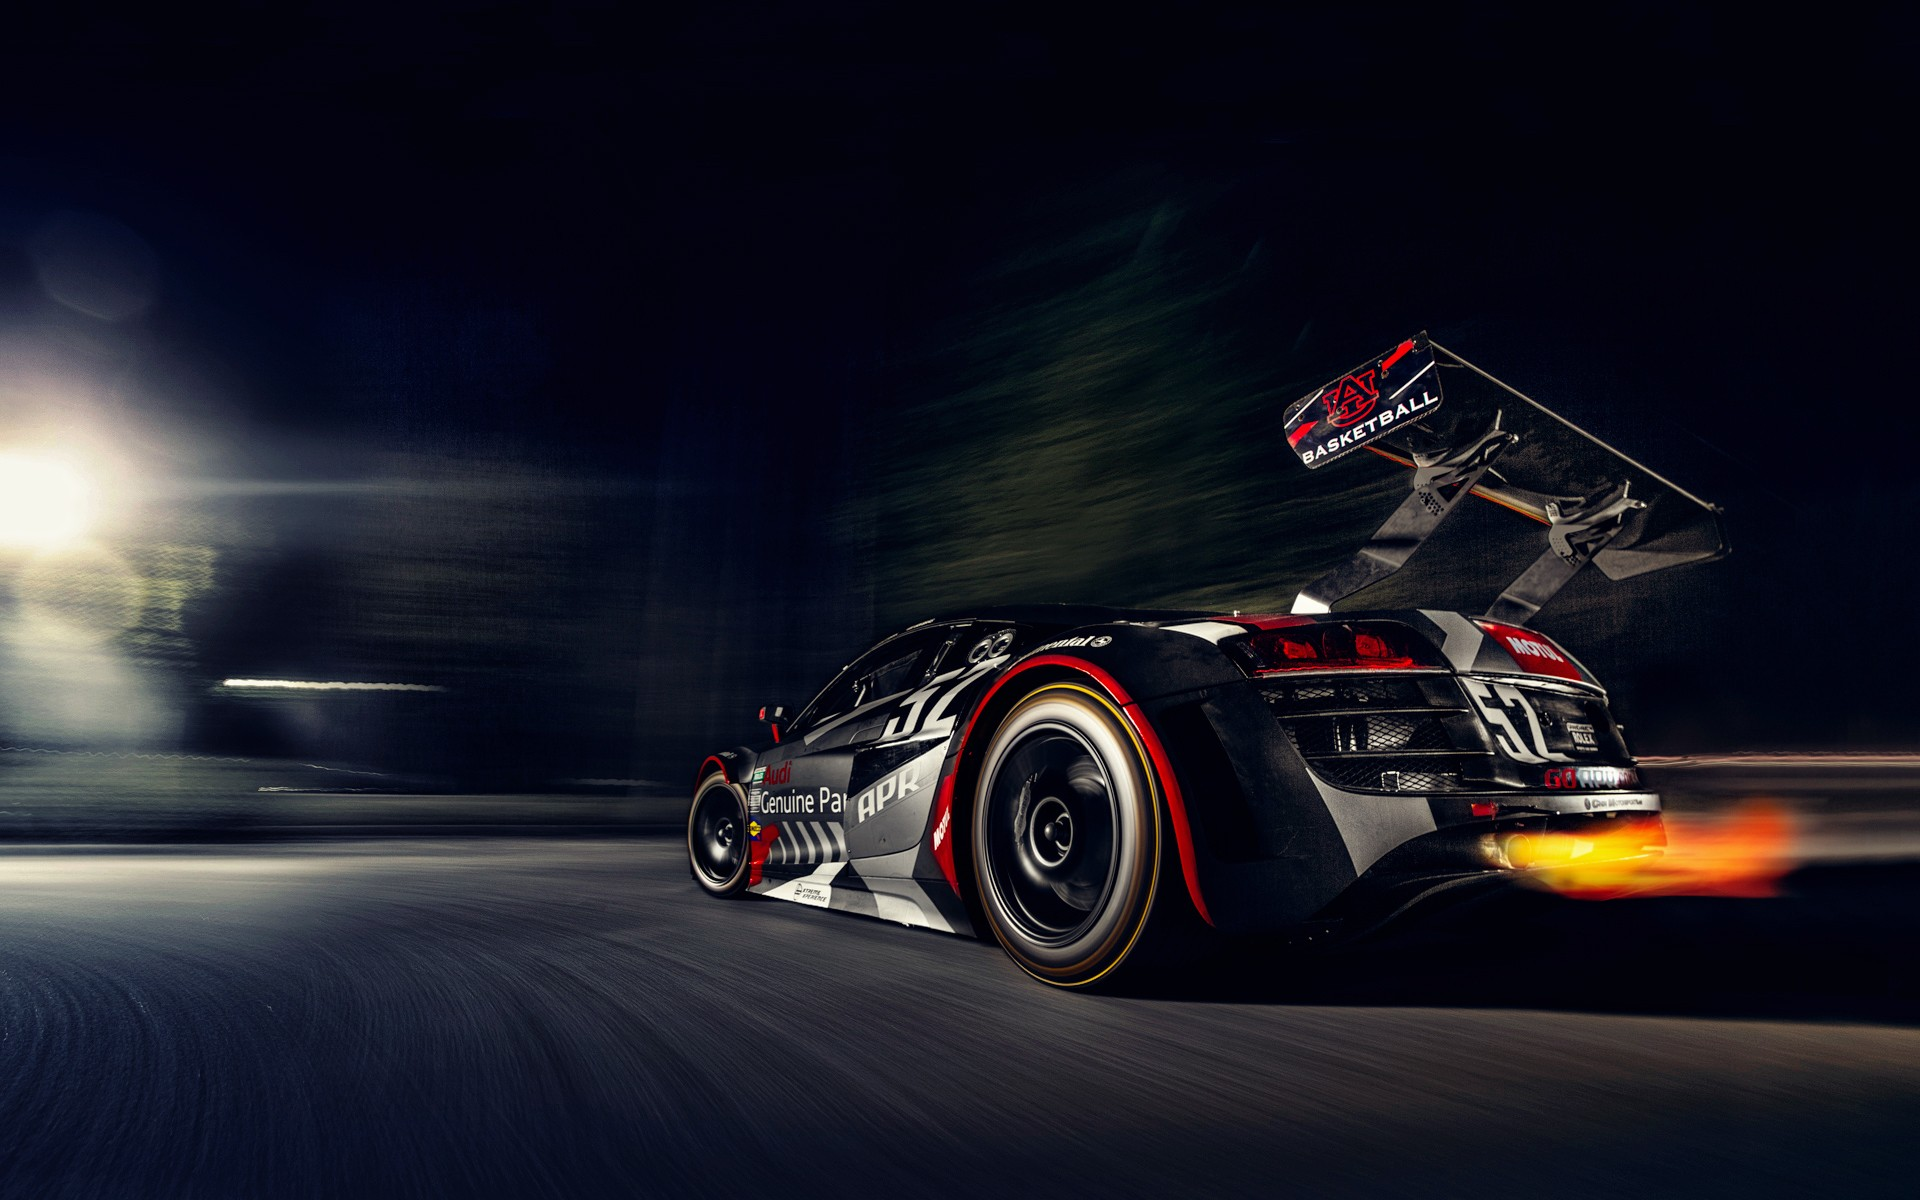 Racing Wallpaper - WallpaperSafari Race 2 Wallpapers Hd